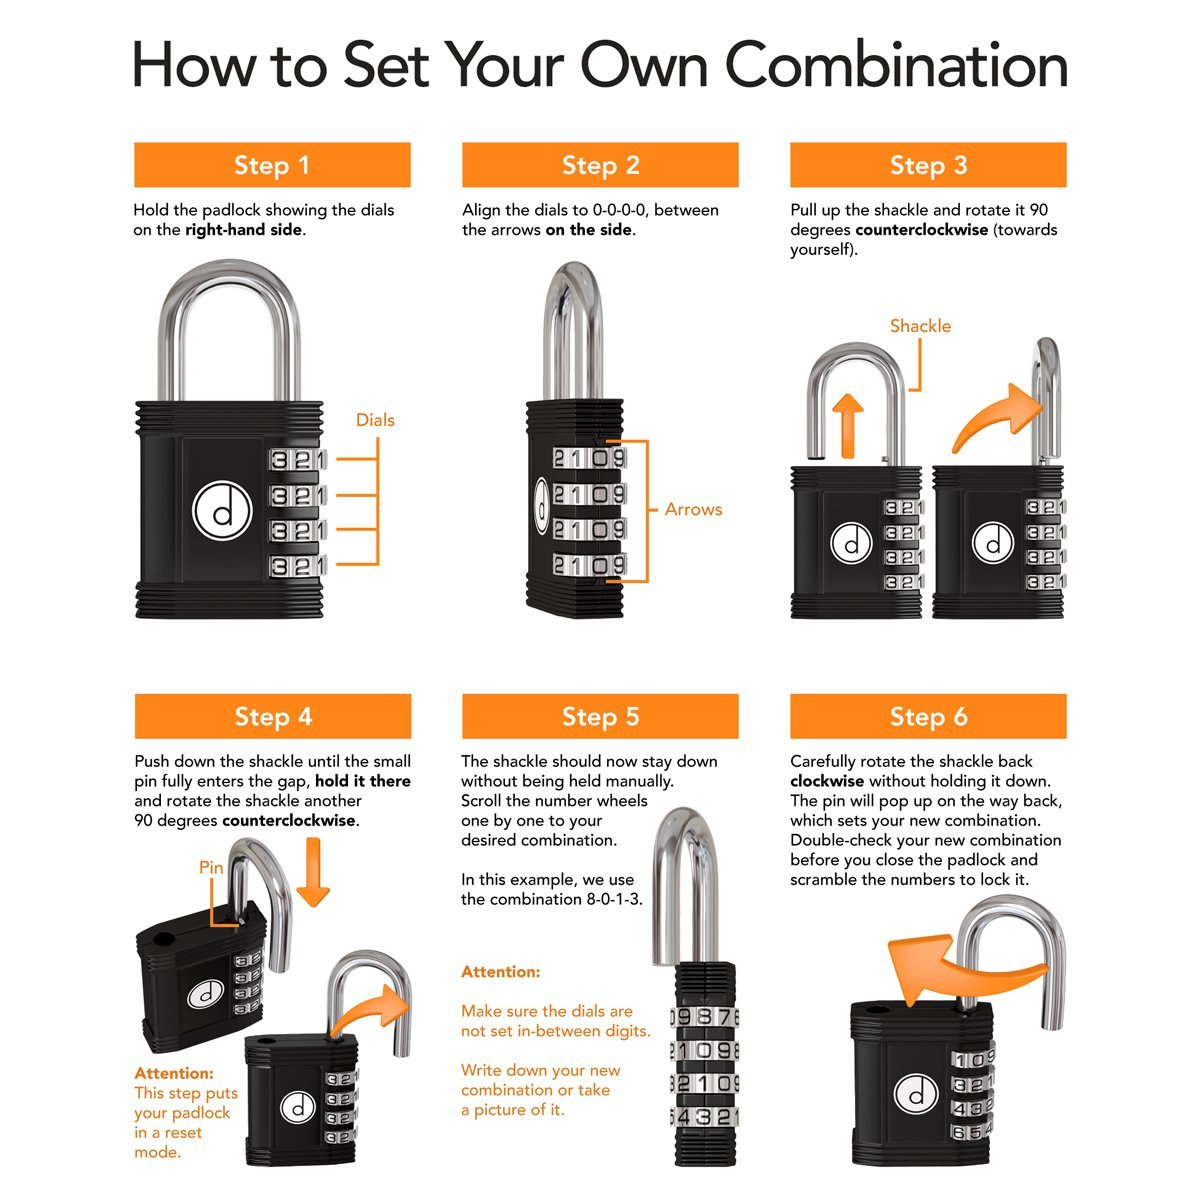 Padlock - 4 Digit Combination Lock for Gym, Sports, School & Employee Locker, Outdoor, Fence, Hasp and Storage - All Weather Metal & Steel - Easy to Set Your Own Keyless Resettable Combo - Green by desired tools (Image #5)